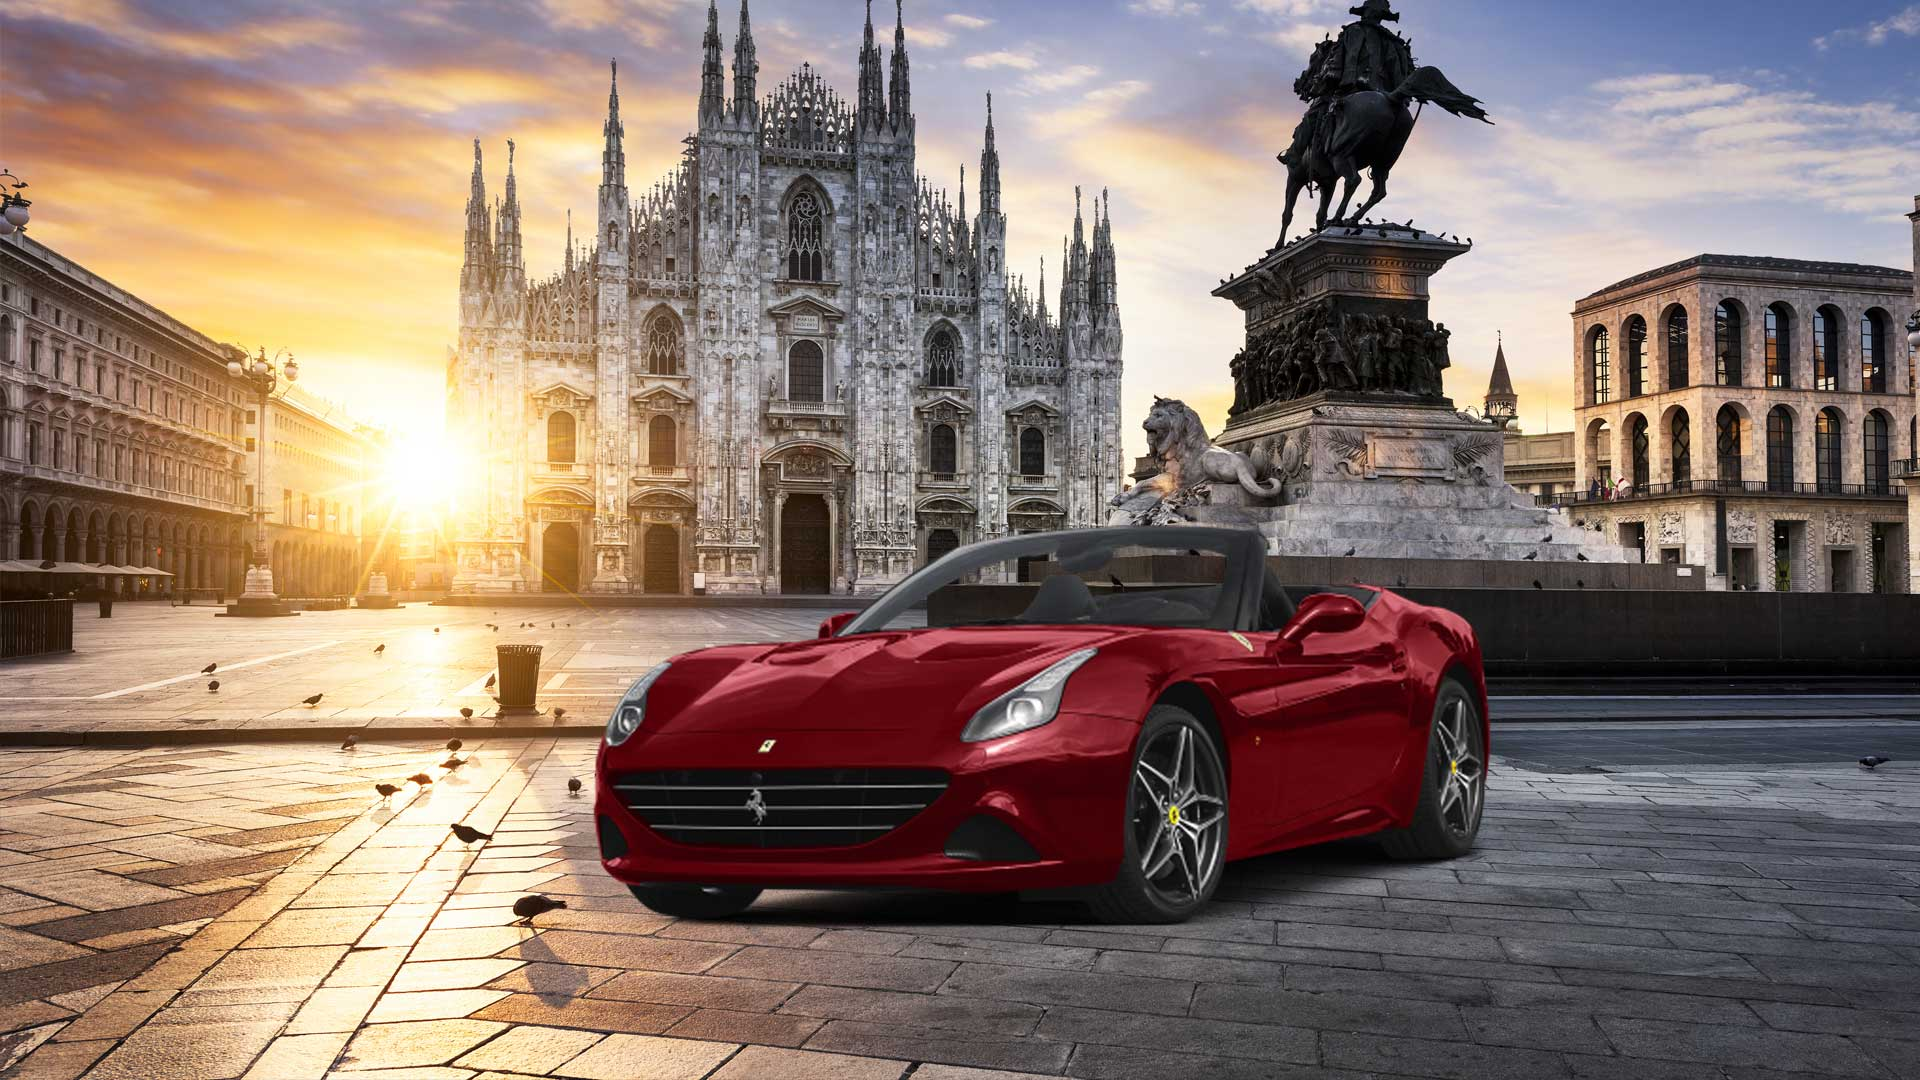 rent luxury car milan power service luxury car hire ferrari lamborghini porsche maserati mclaren mercedes bentley in italy tuscany europe florence rome milan monaco geneva nizza montecarlo